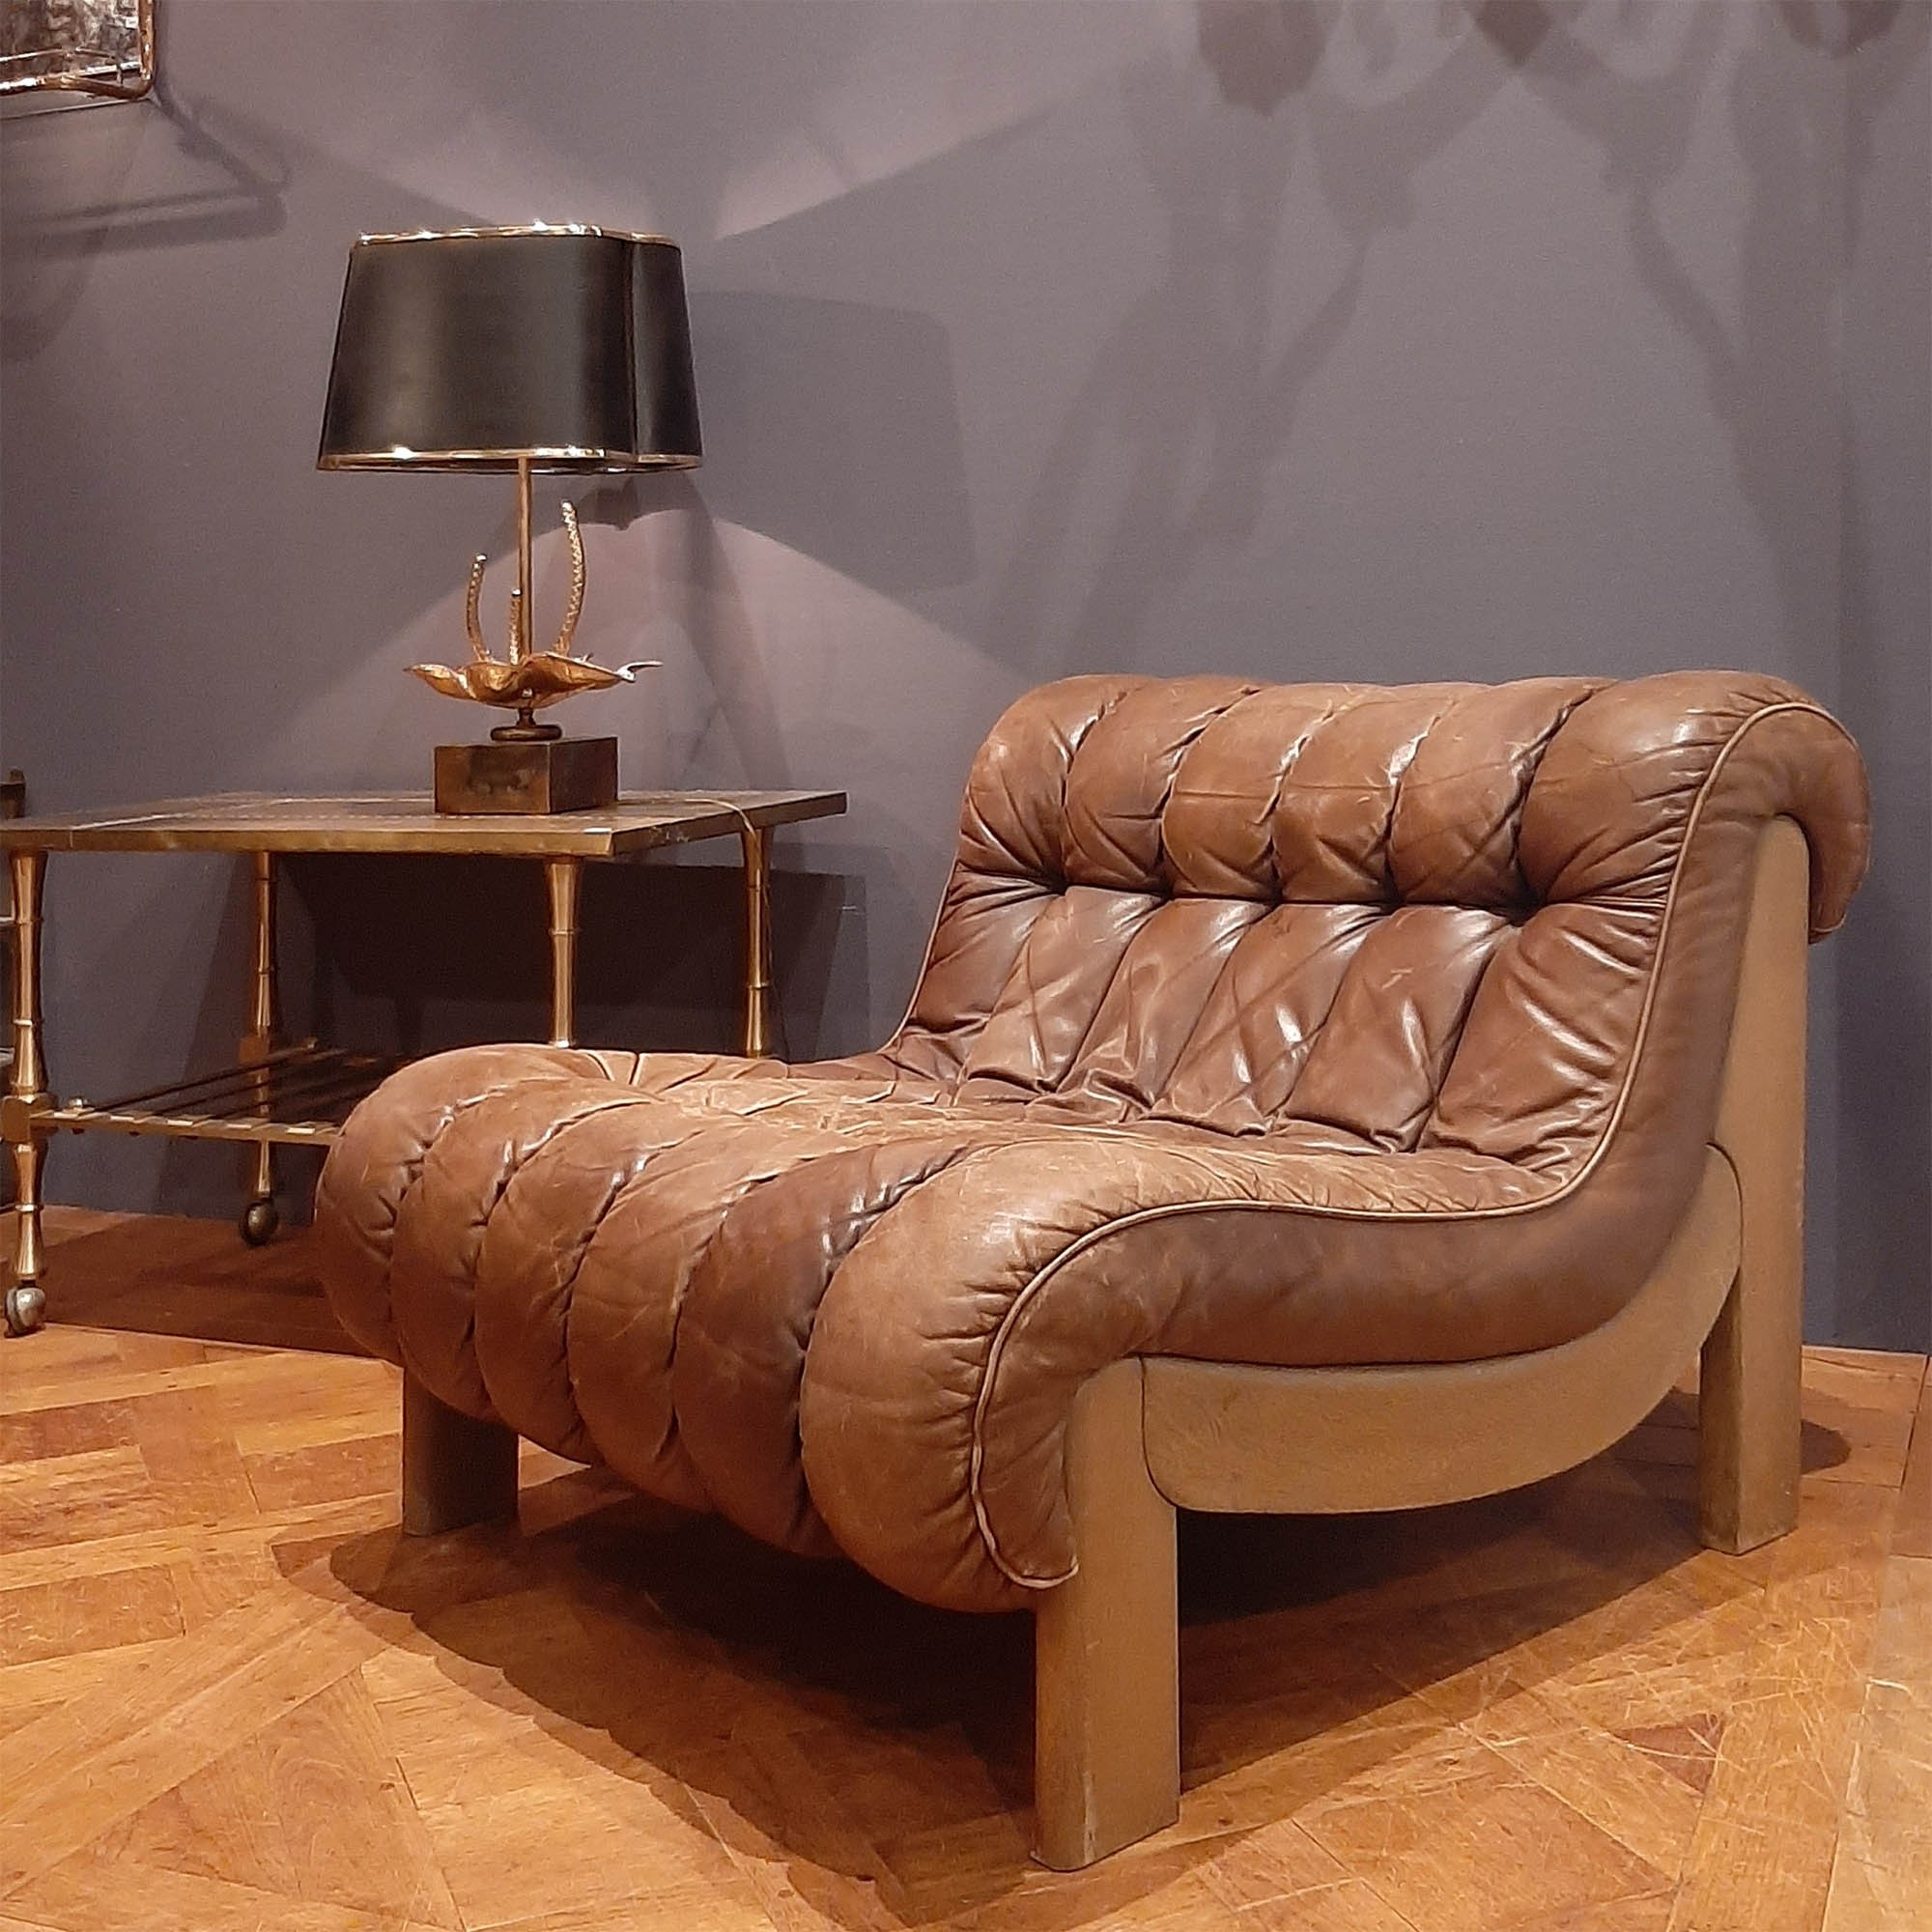 Leather armchair in the De Sede style